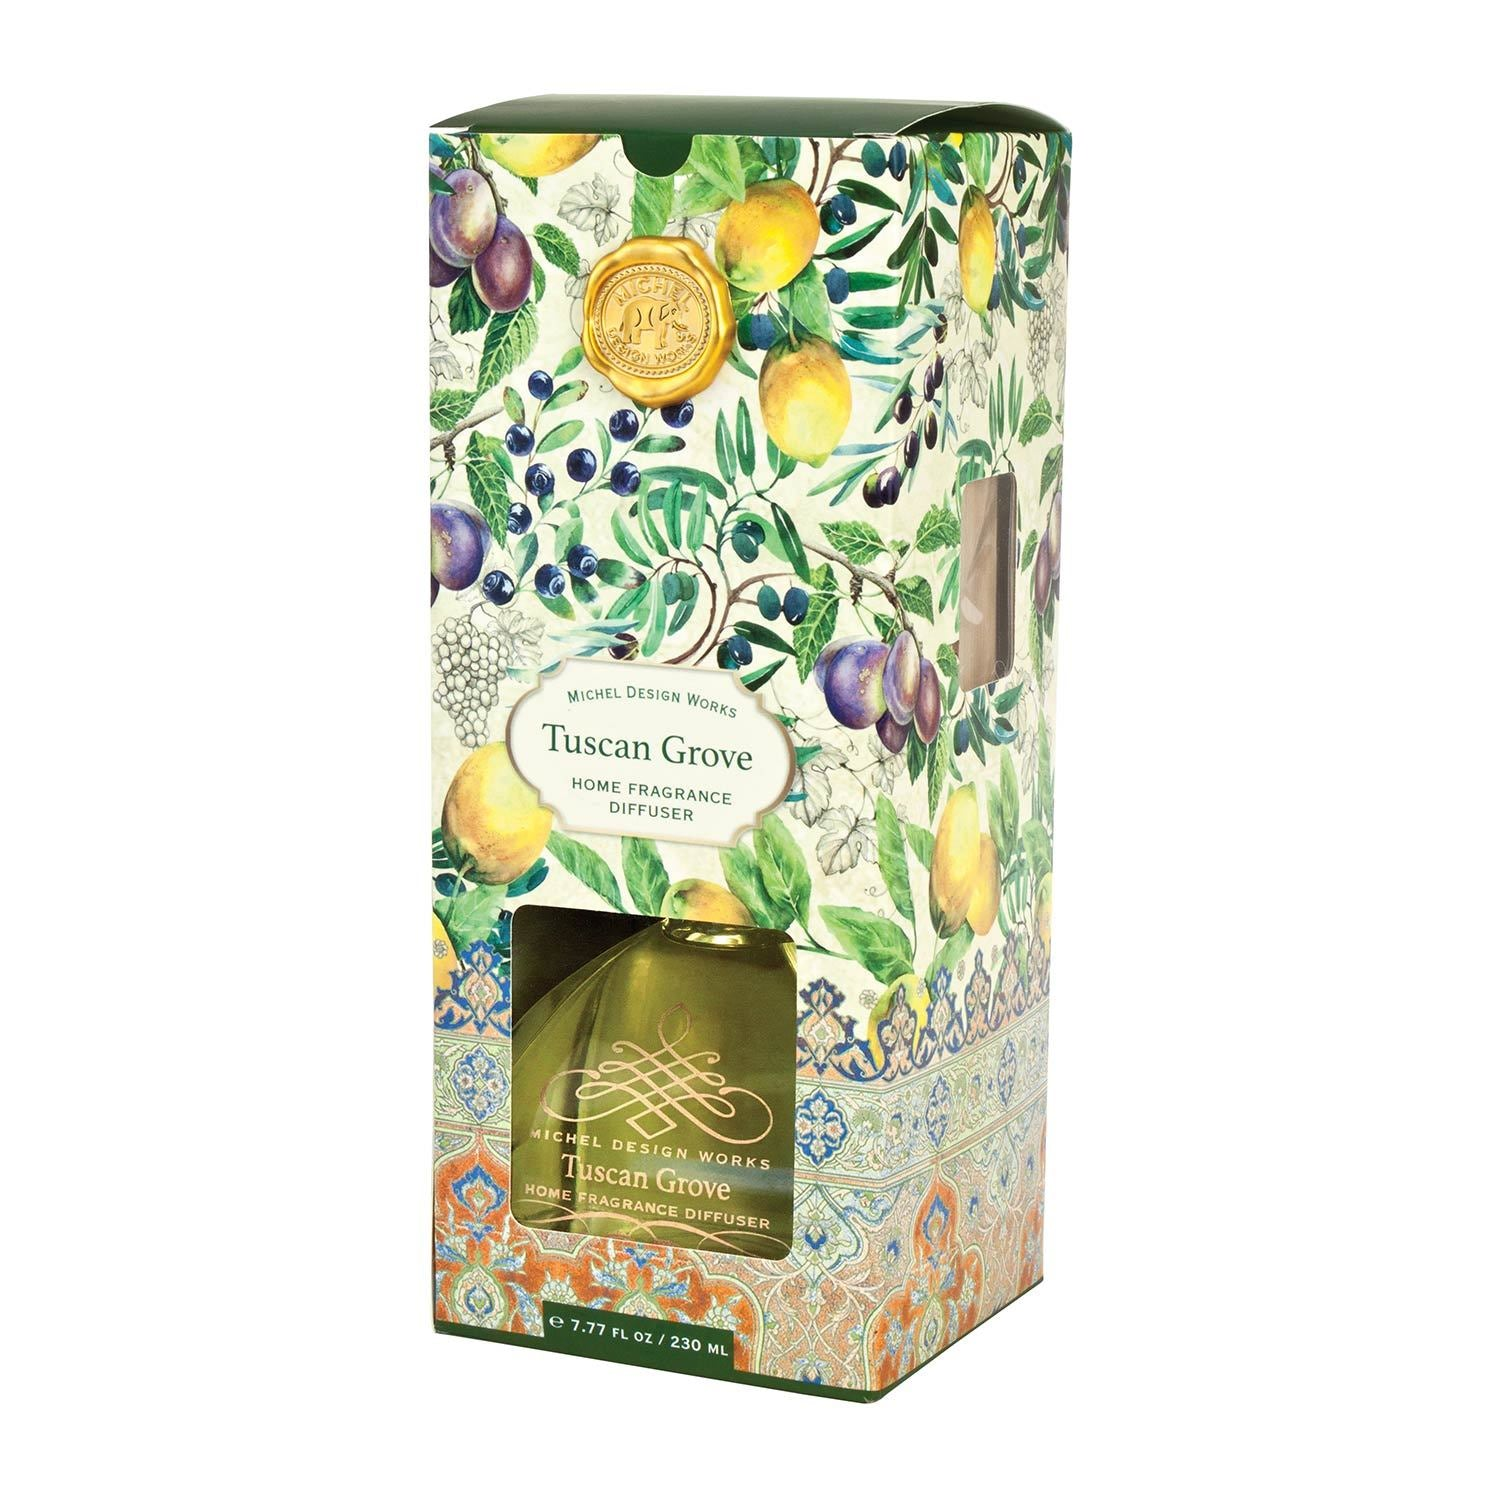 Tuscan Grove Home Fragrance Diffuser